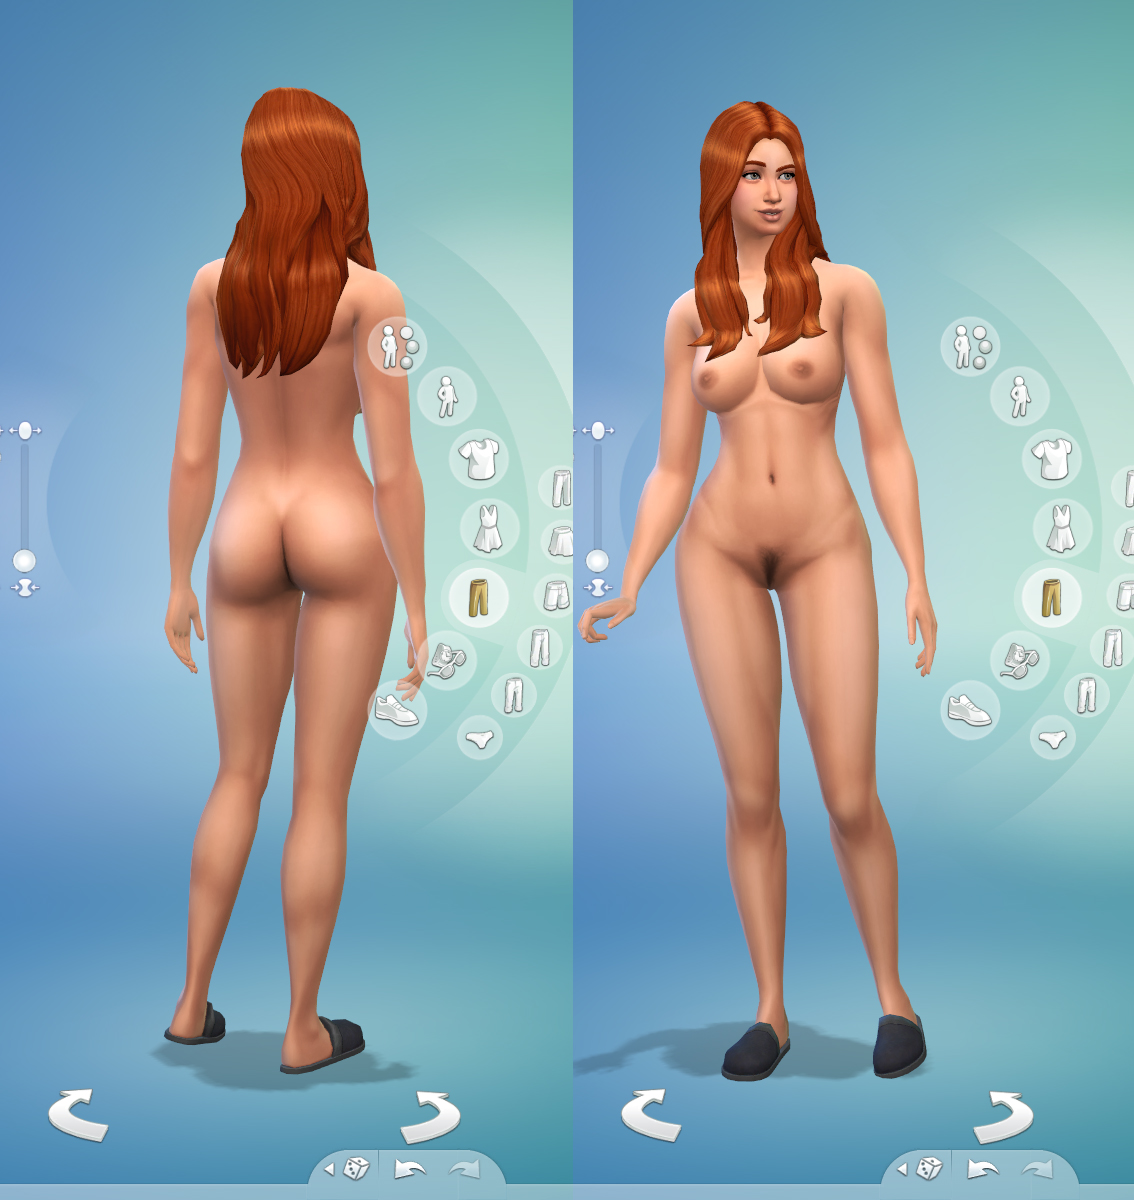 Female nudes sims 4 fucked wives